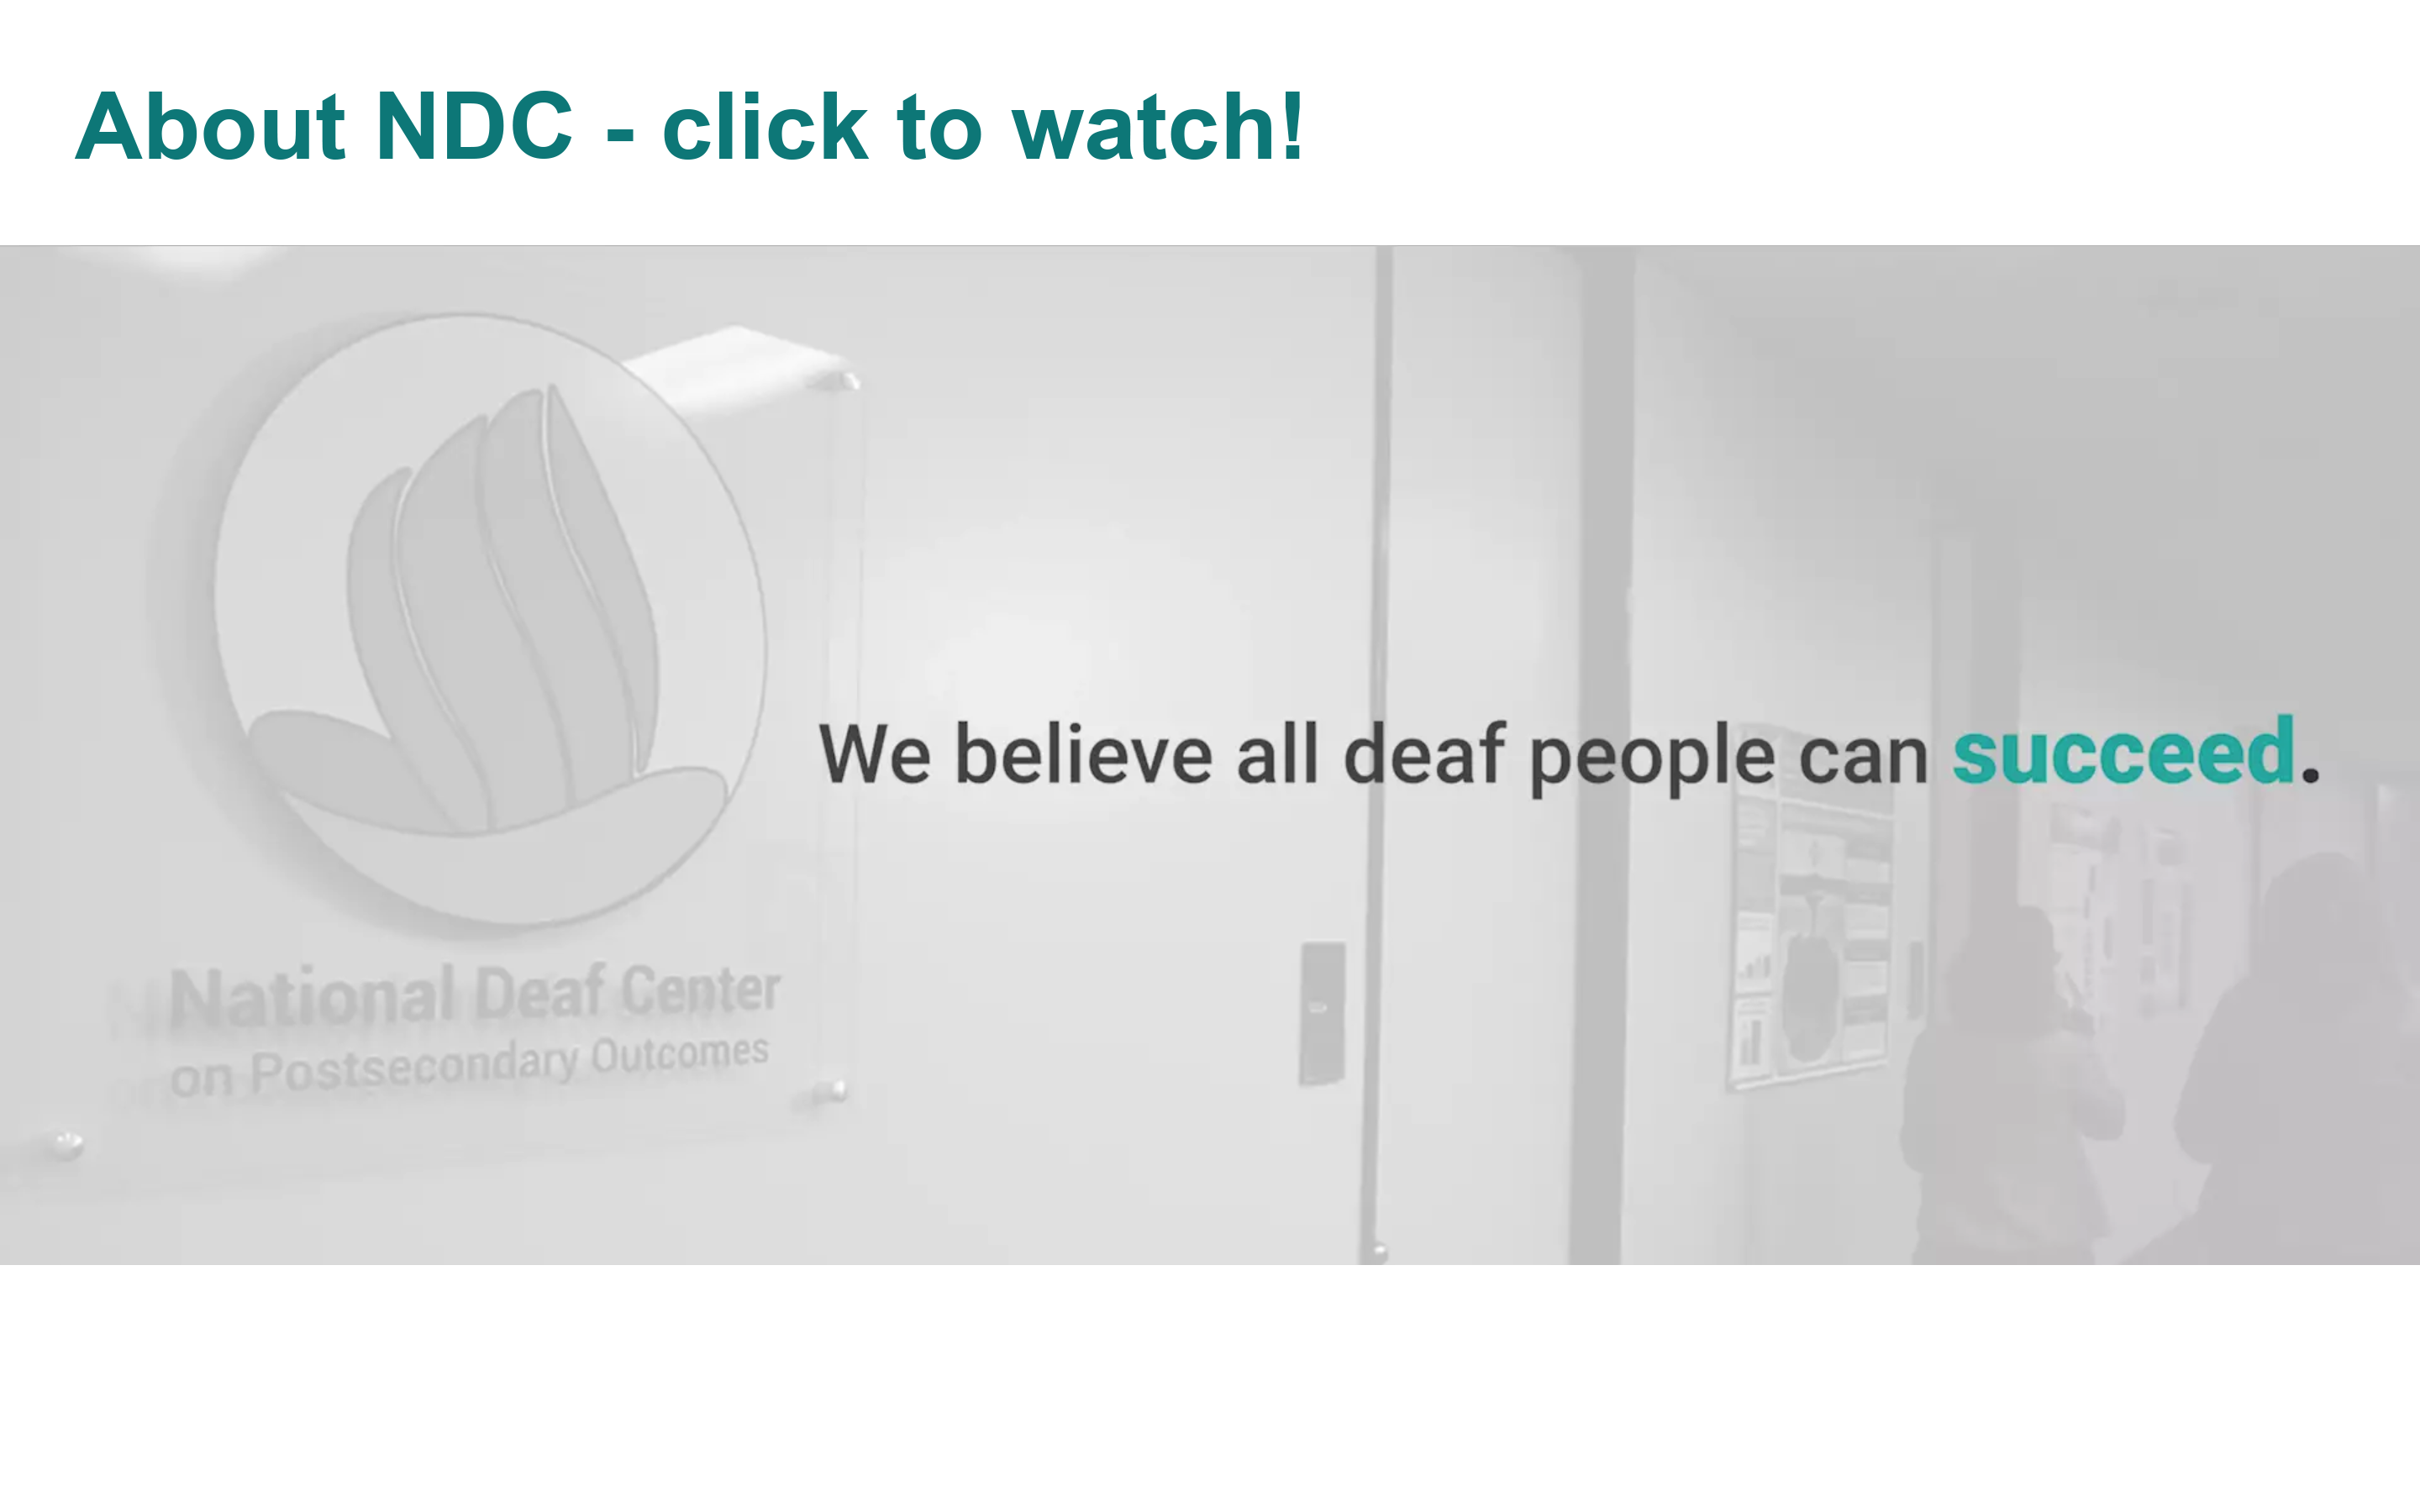 Welcome to the National Deaf Center!